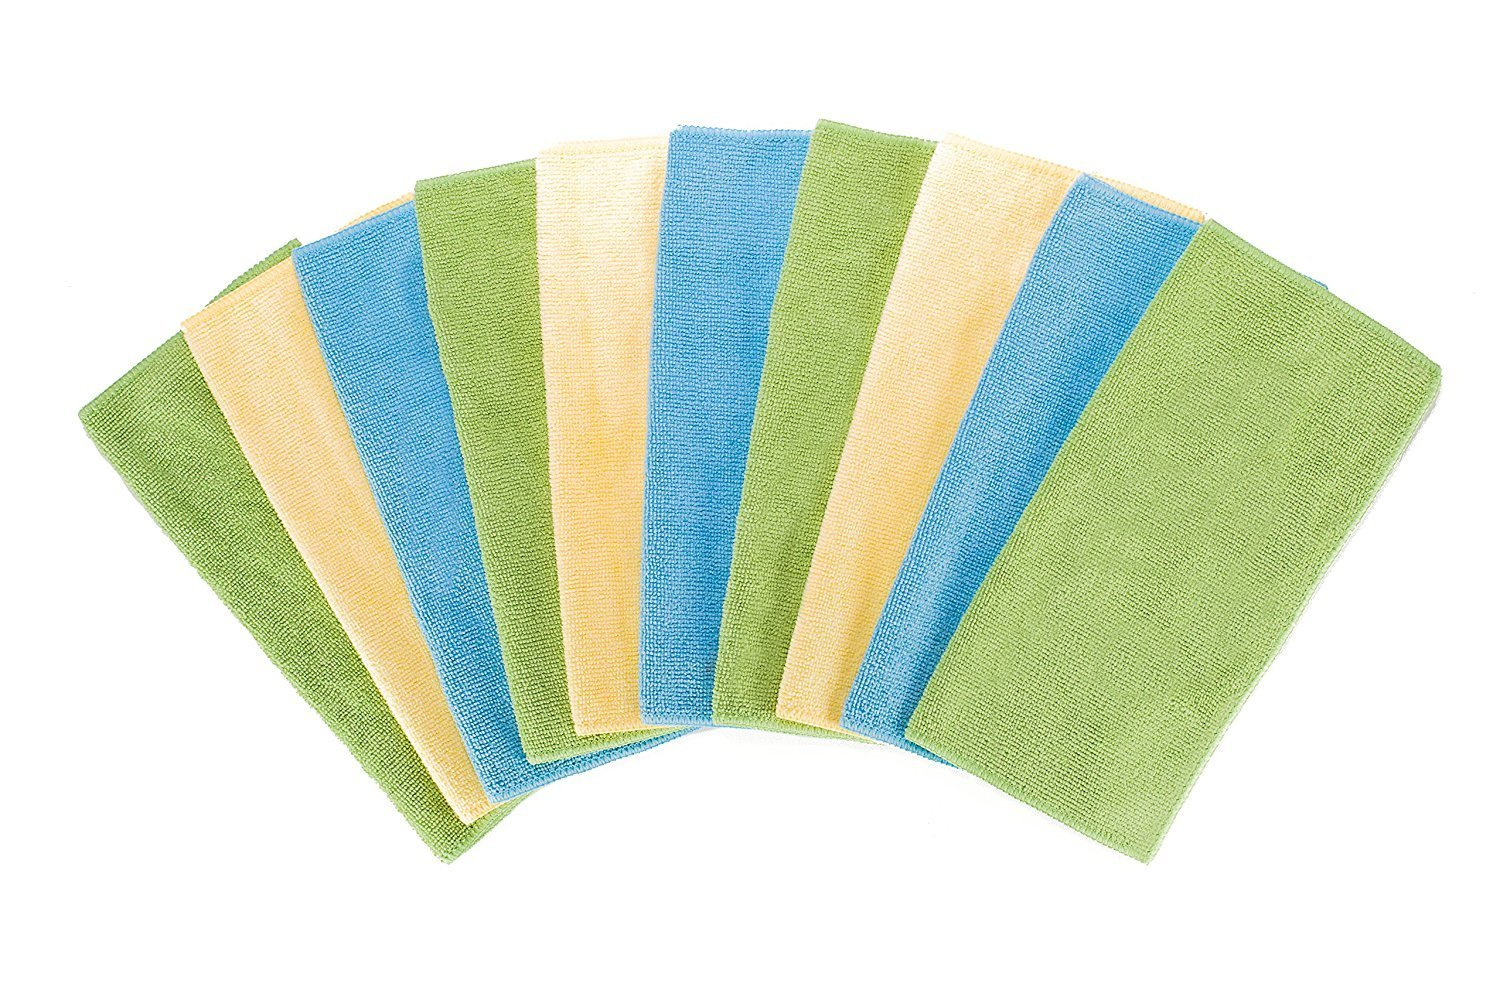 "Fuller Brush All-Purpose Microfiber Cleaning Cloths - Multicolored - Reusable Dusting, Washing & Wiping Cloths - Extra Large Size 16""x16"" Inches - 10 Pack"